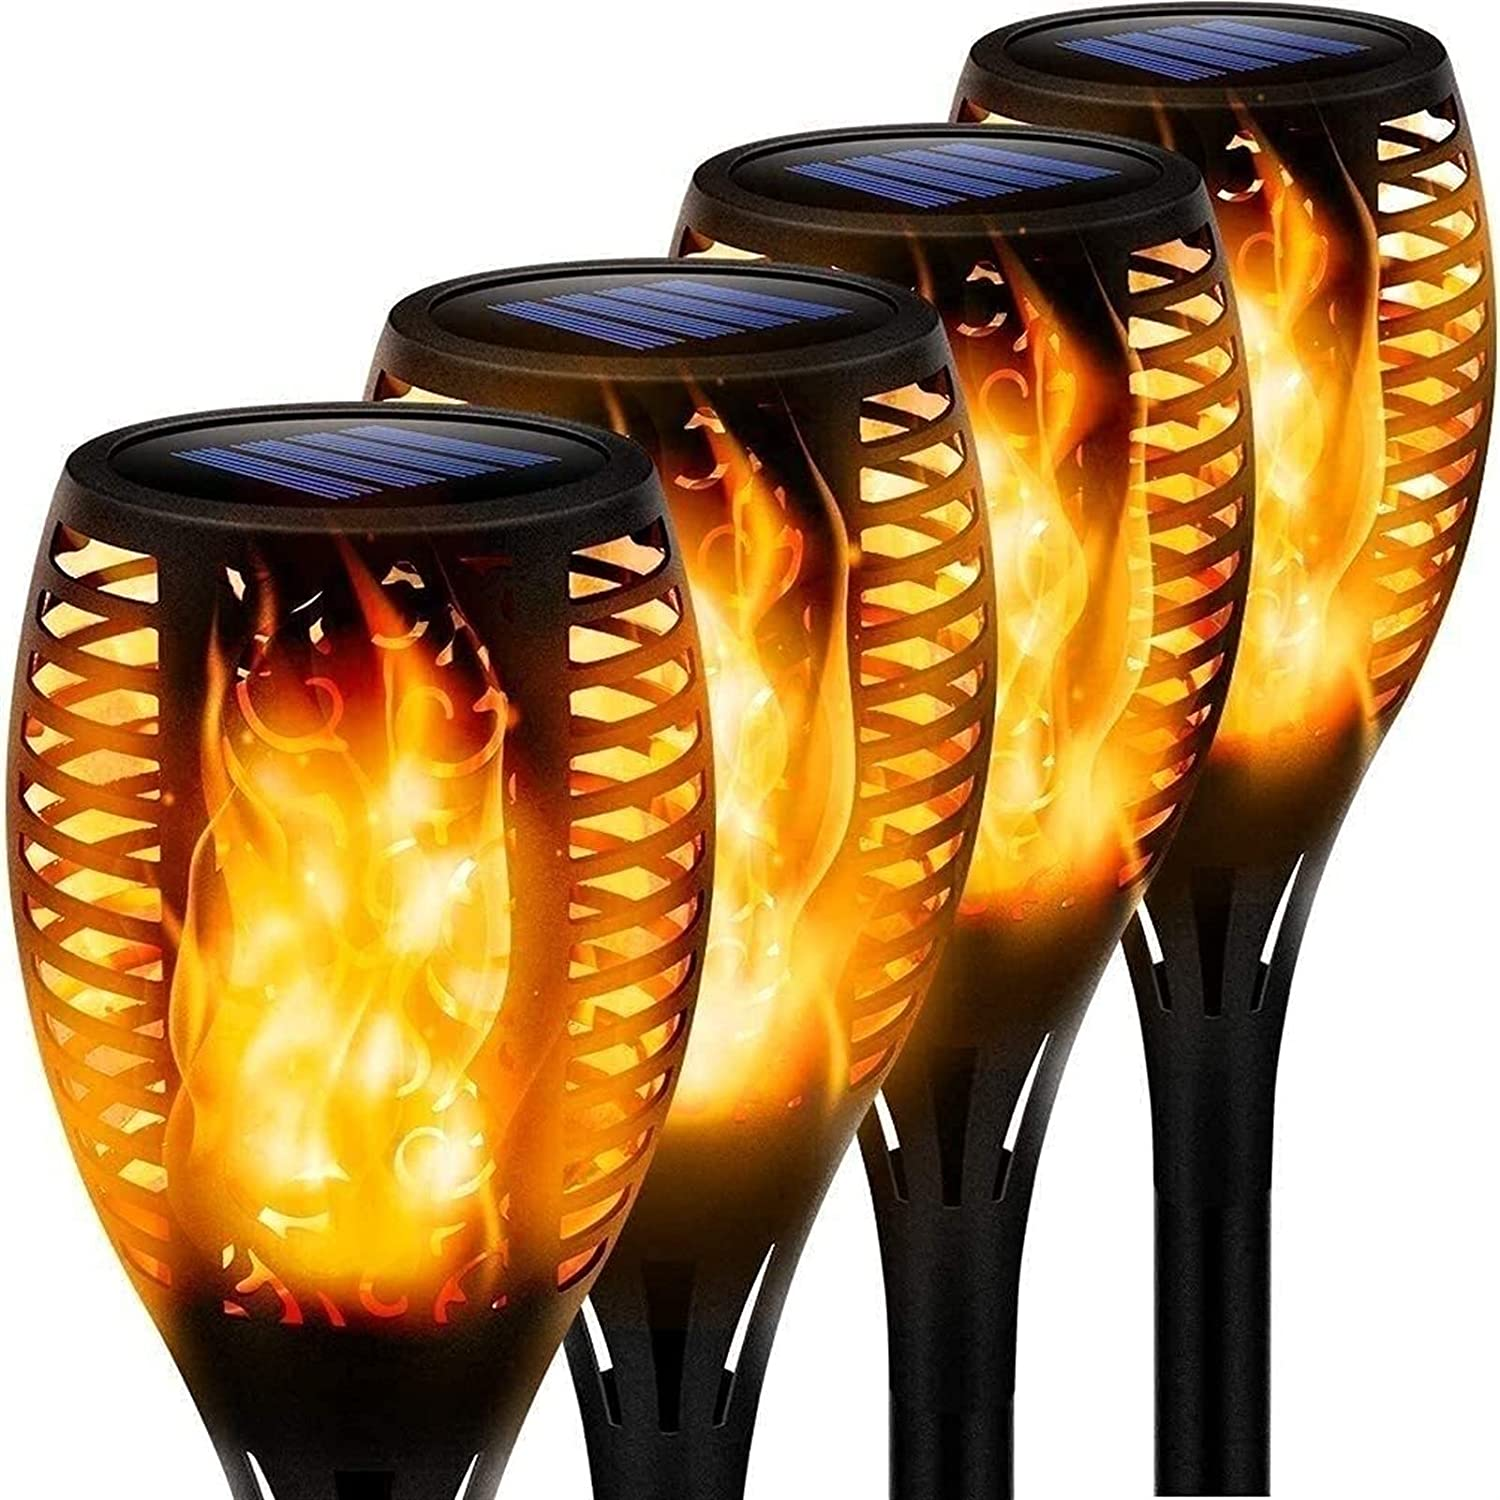 SKYWPOJU 4 Ranking TOP14 Pieces of Flame Solar Waterproof Garden Light OFFicial shop Torches